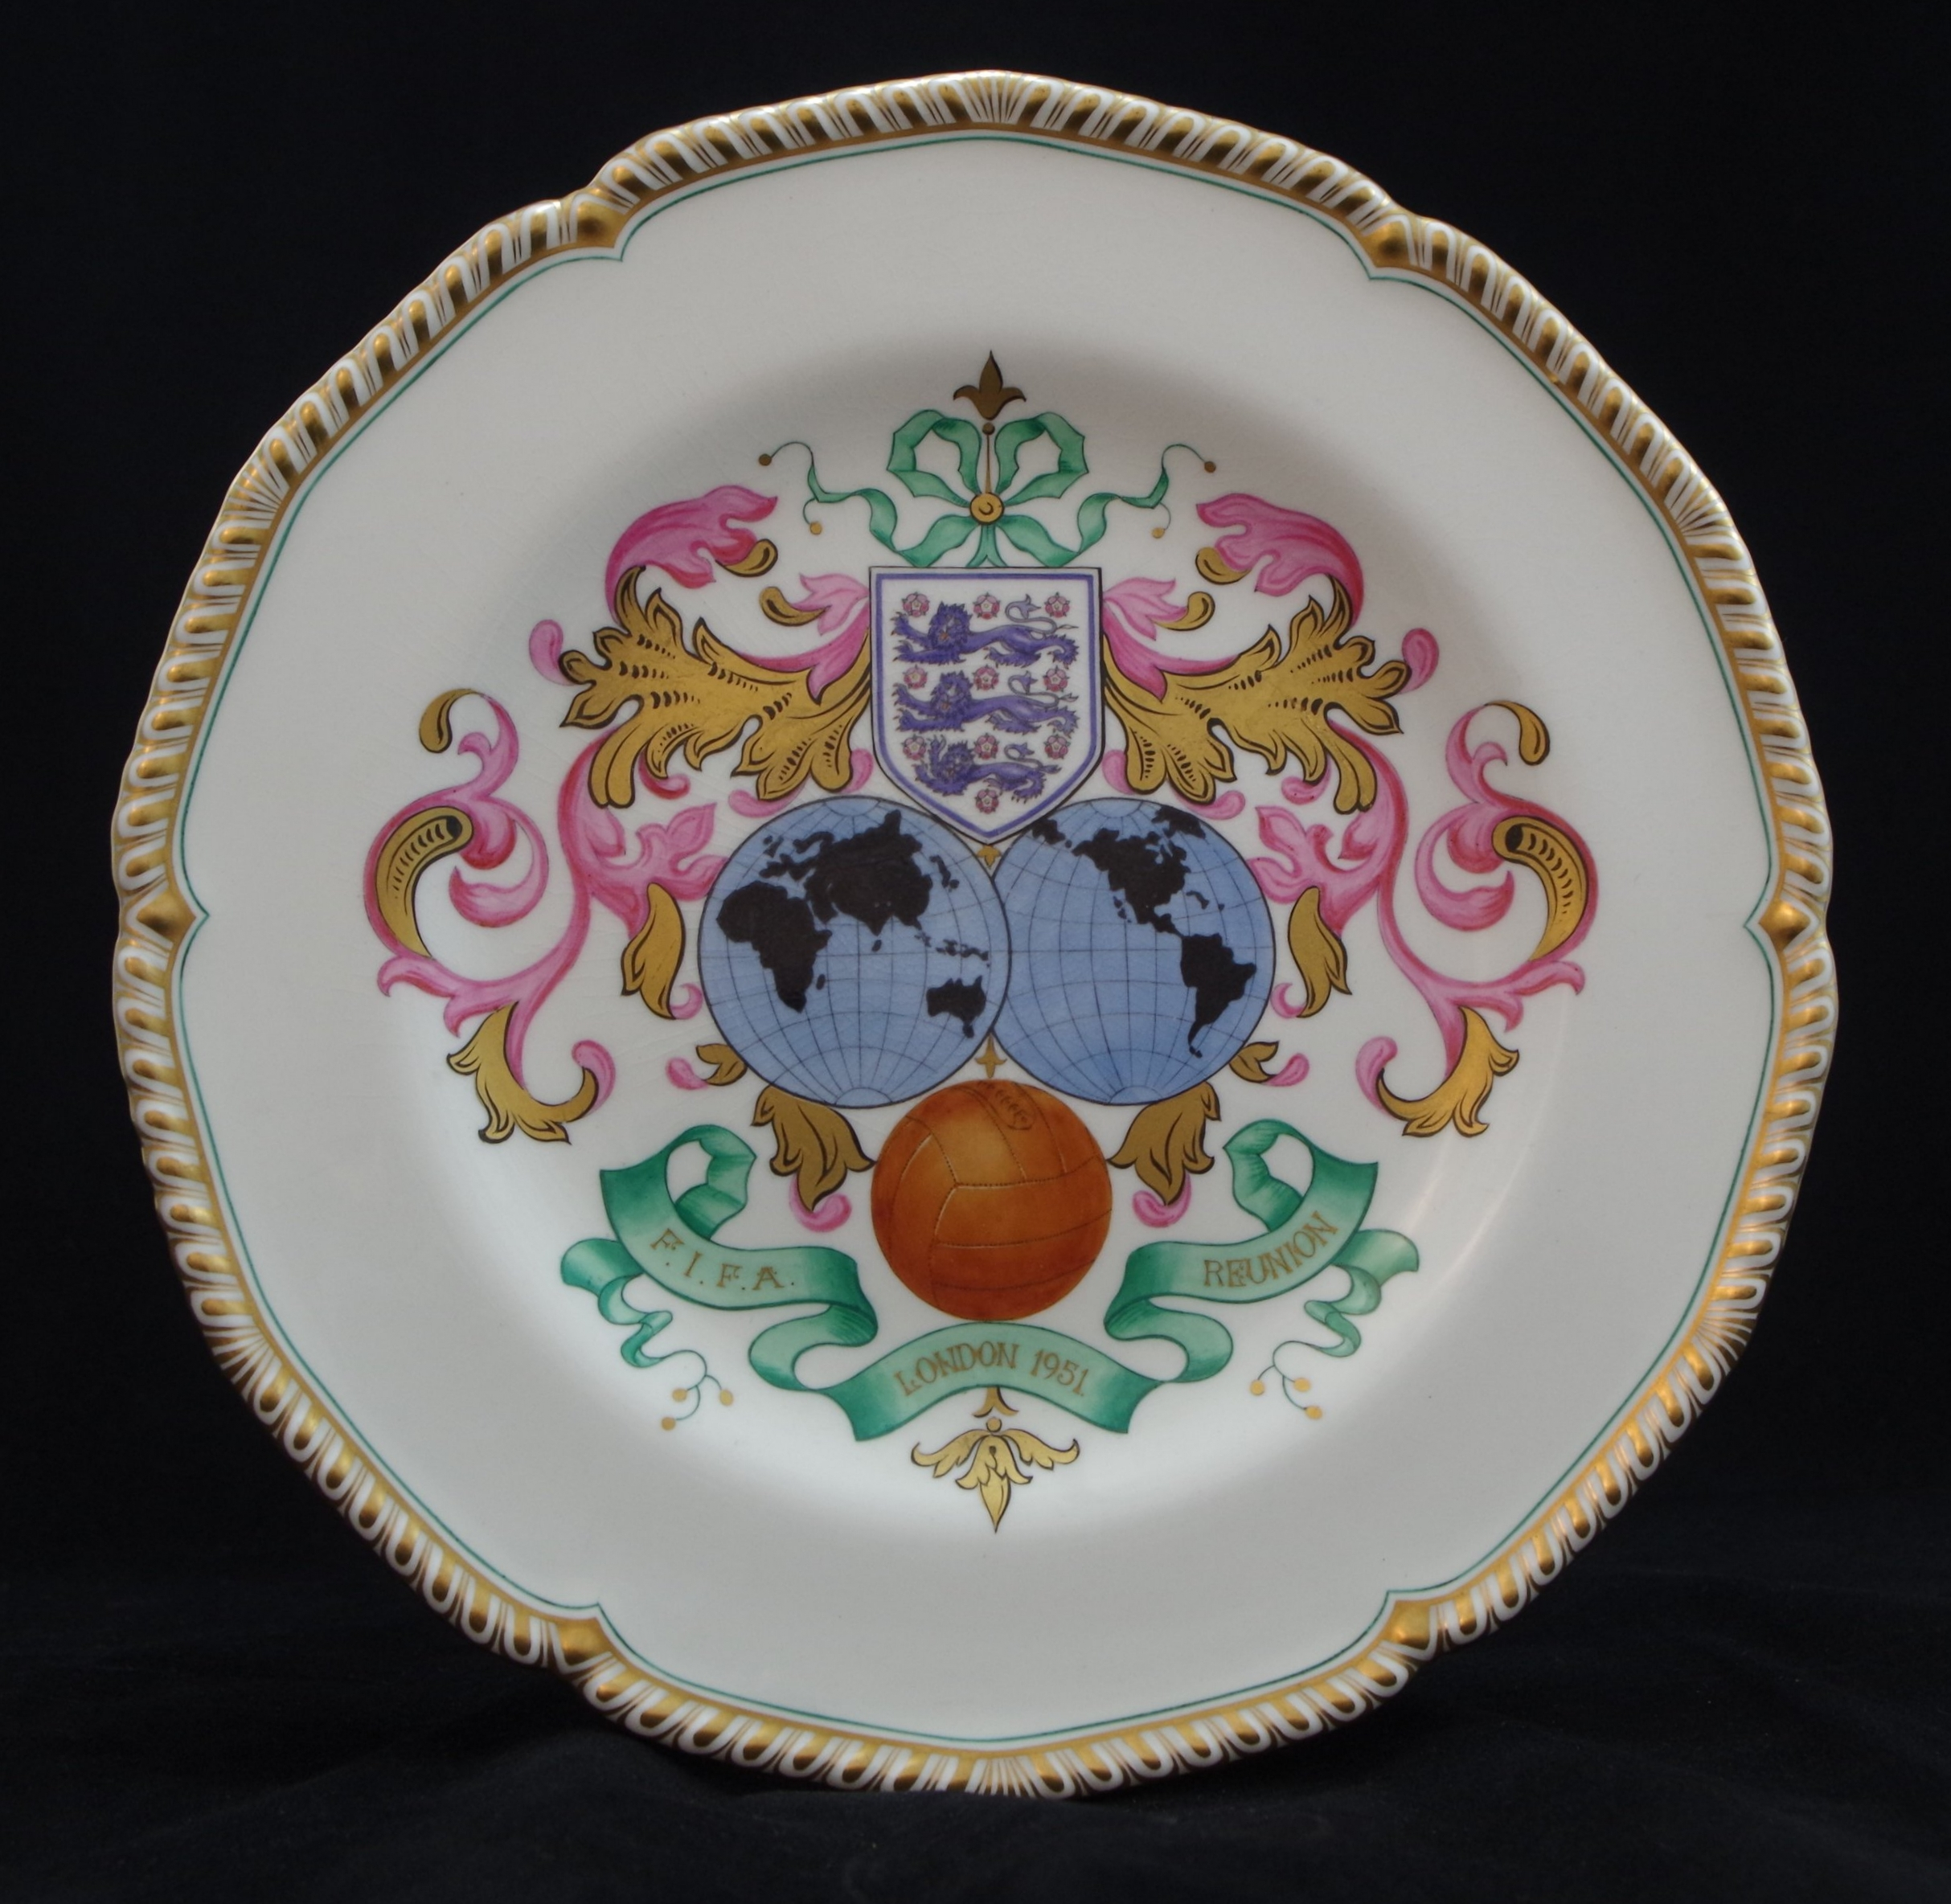 royal-crown-derby-gadroon-FIFA-reunion-plate-1951